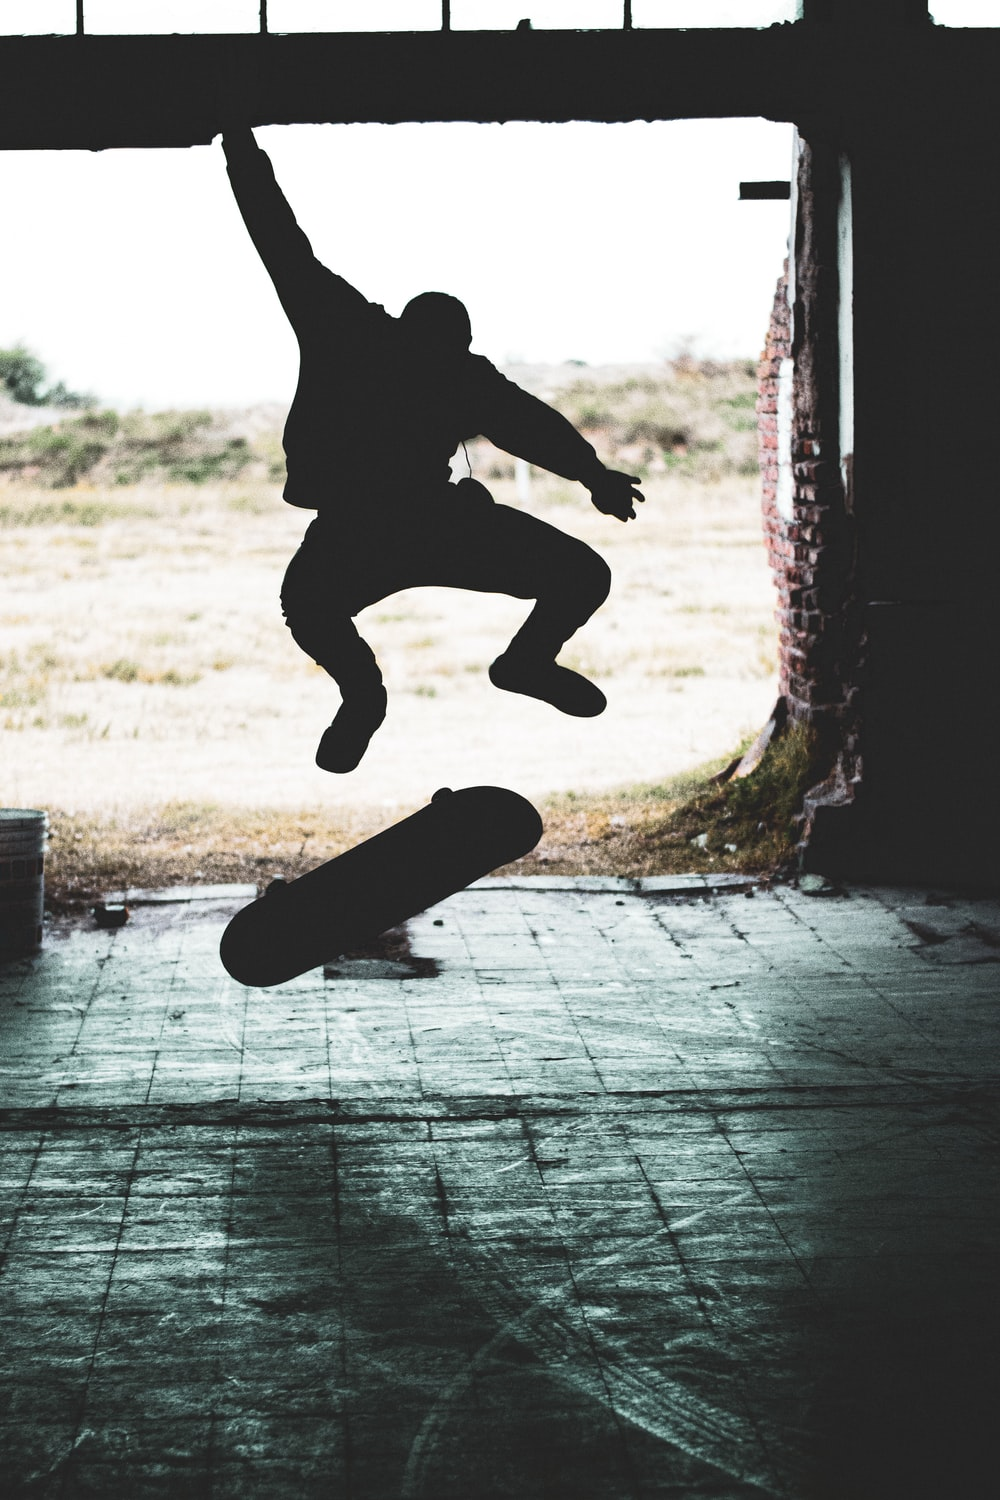 silhouette of person making skateboard stunt during daytime